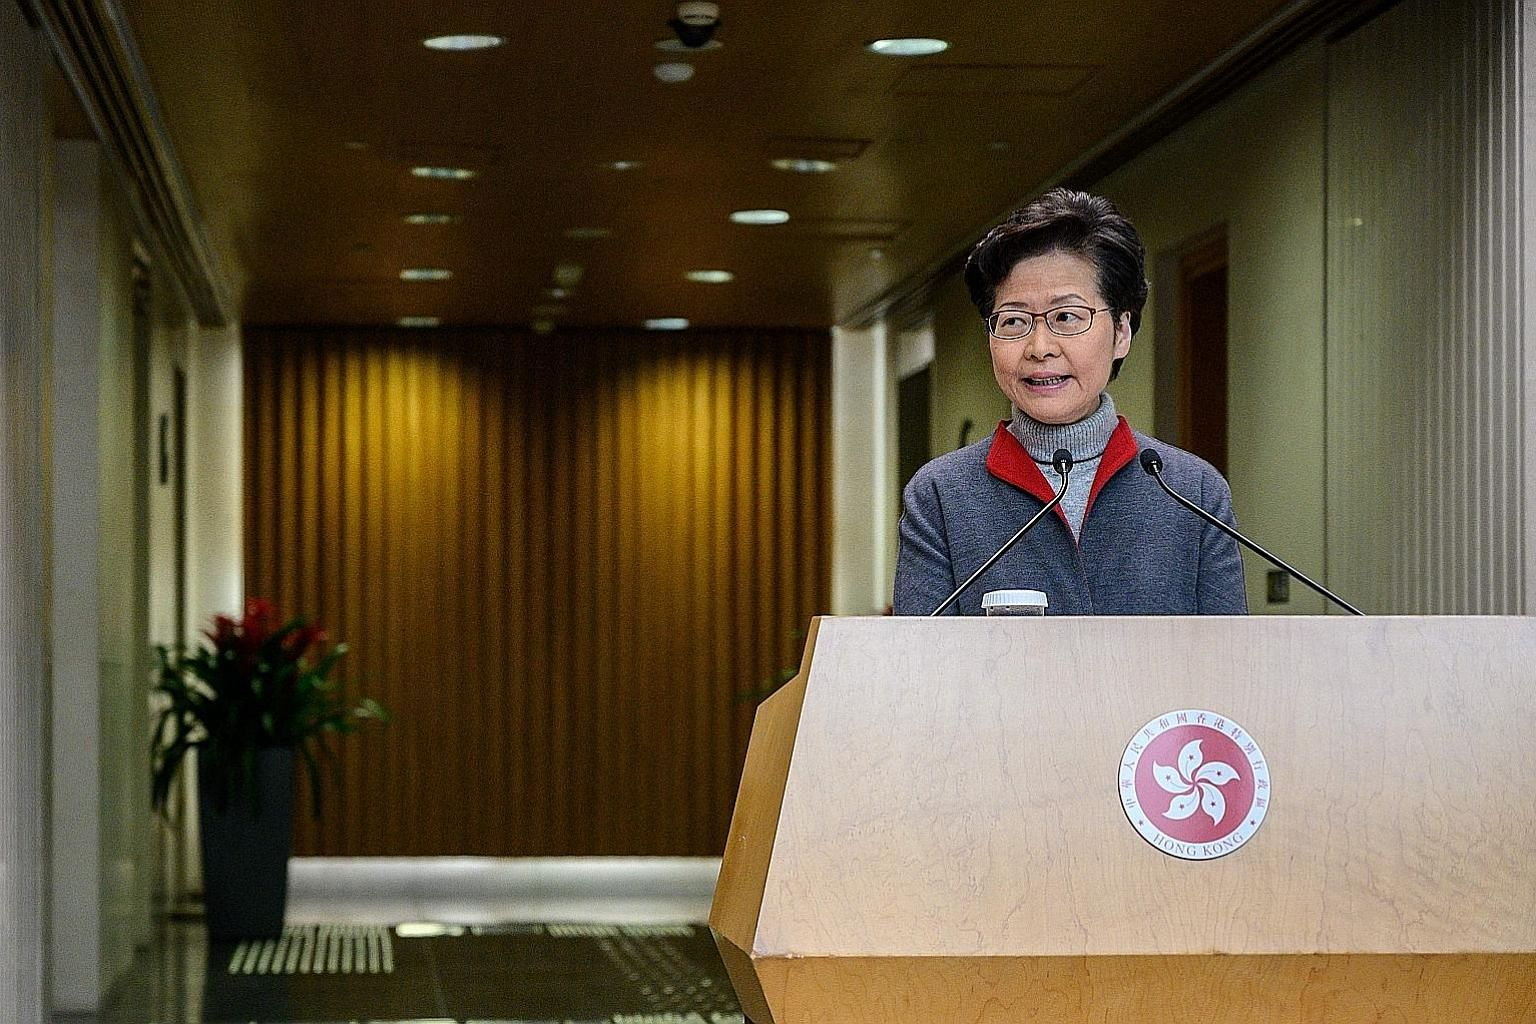 Hong Kong's Chief Executive Carrie Lam yesterday said the package of 10 measures is focused on helping the vulnerable and is expected to benefit over a million people. PHOTO: AGENCE FRANCE-PRESSE